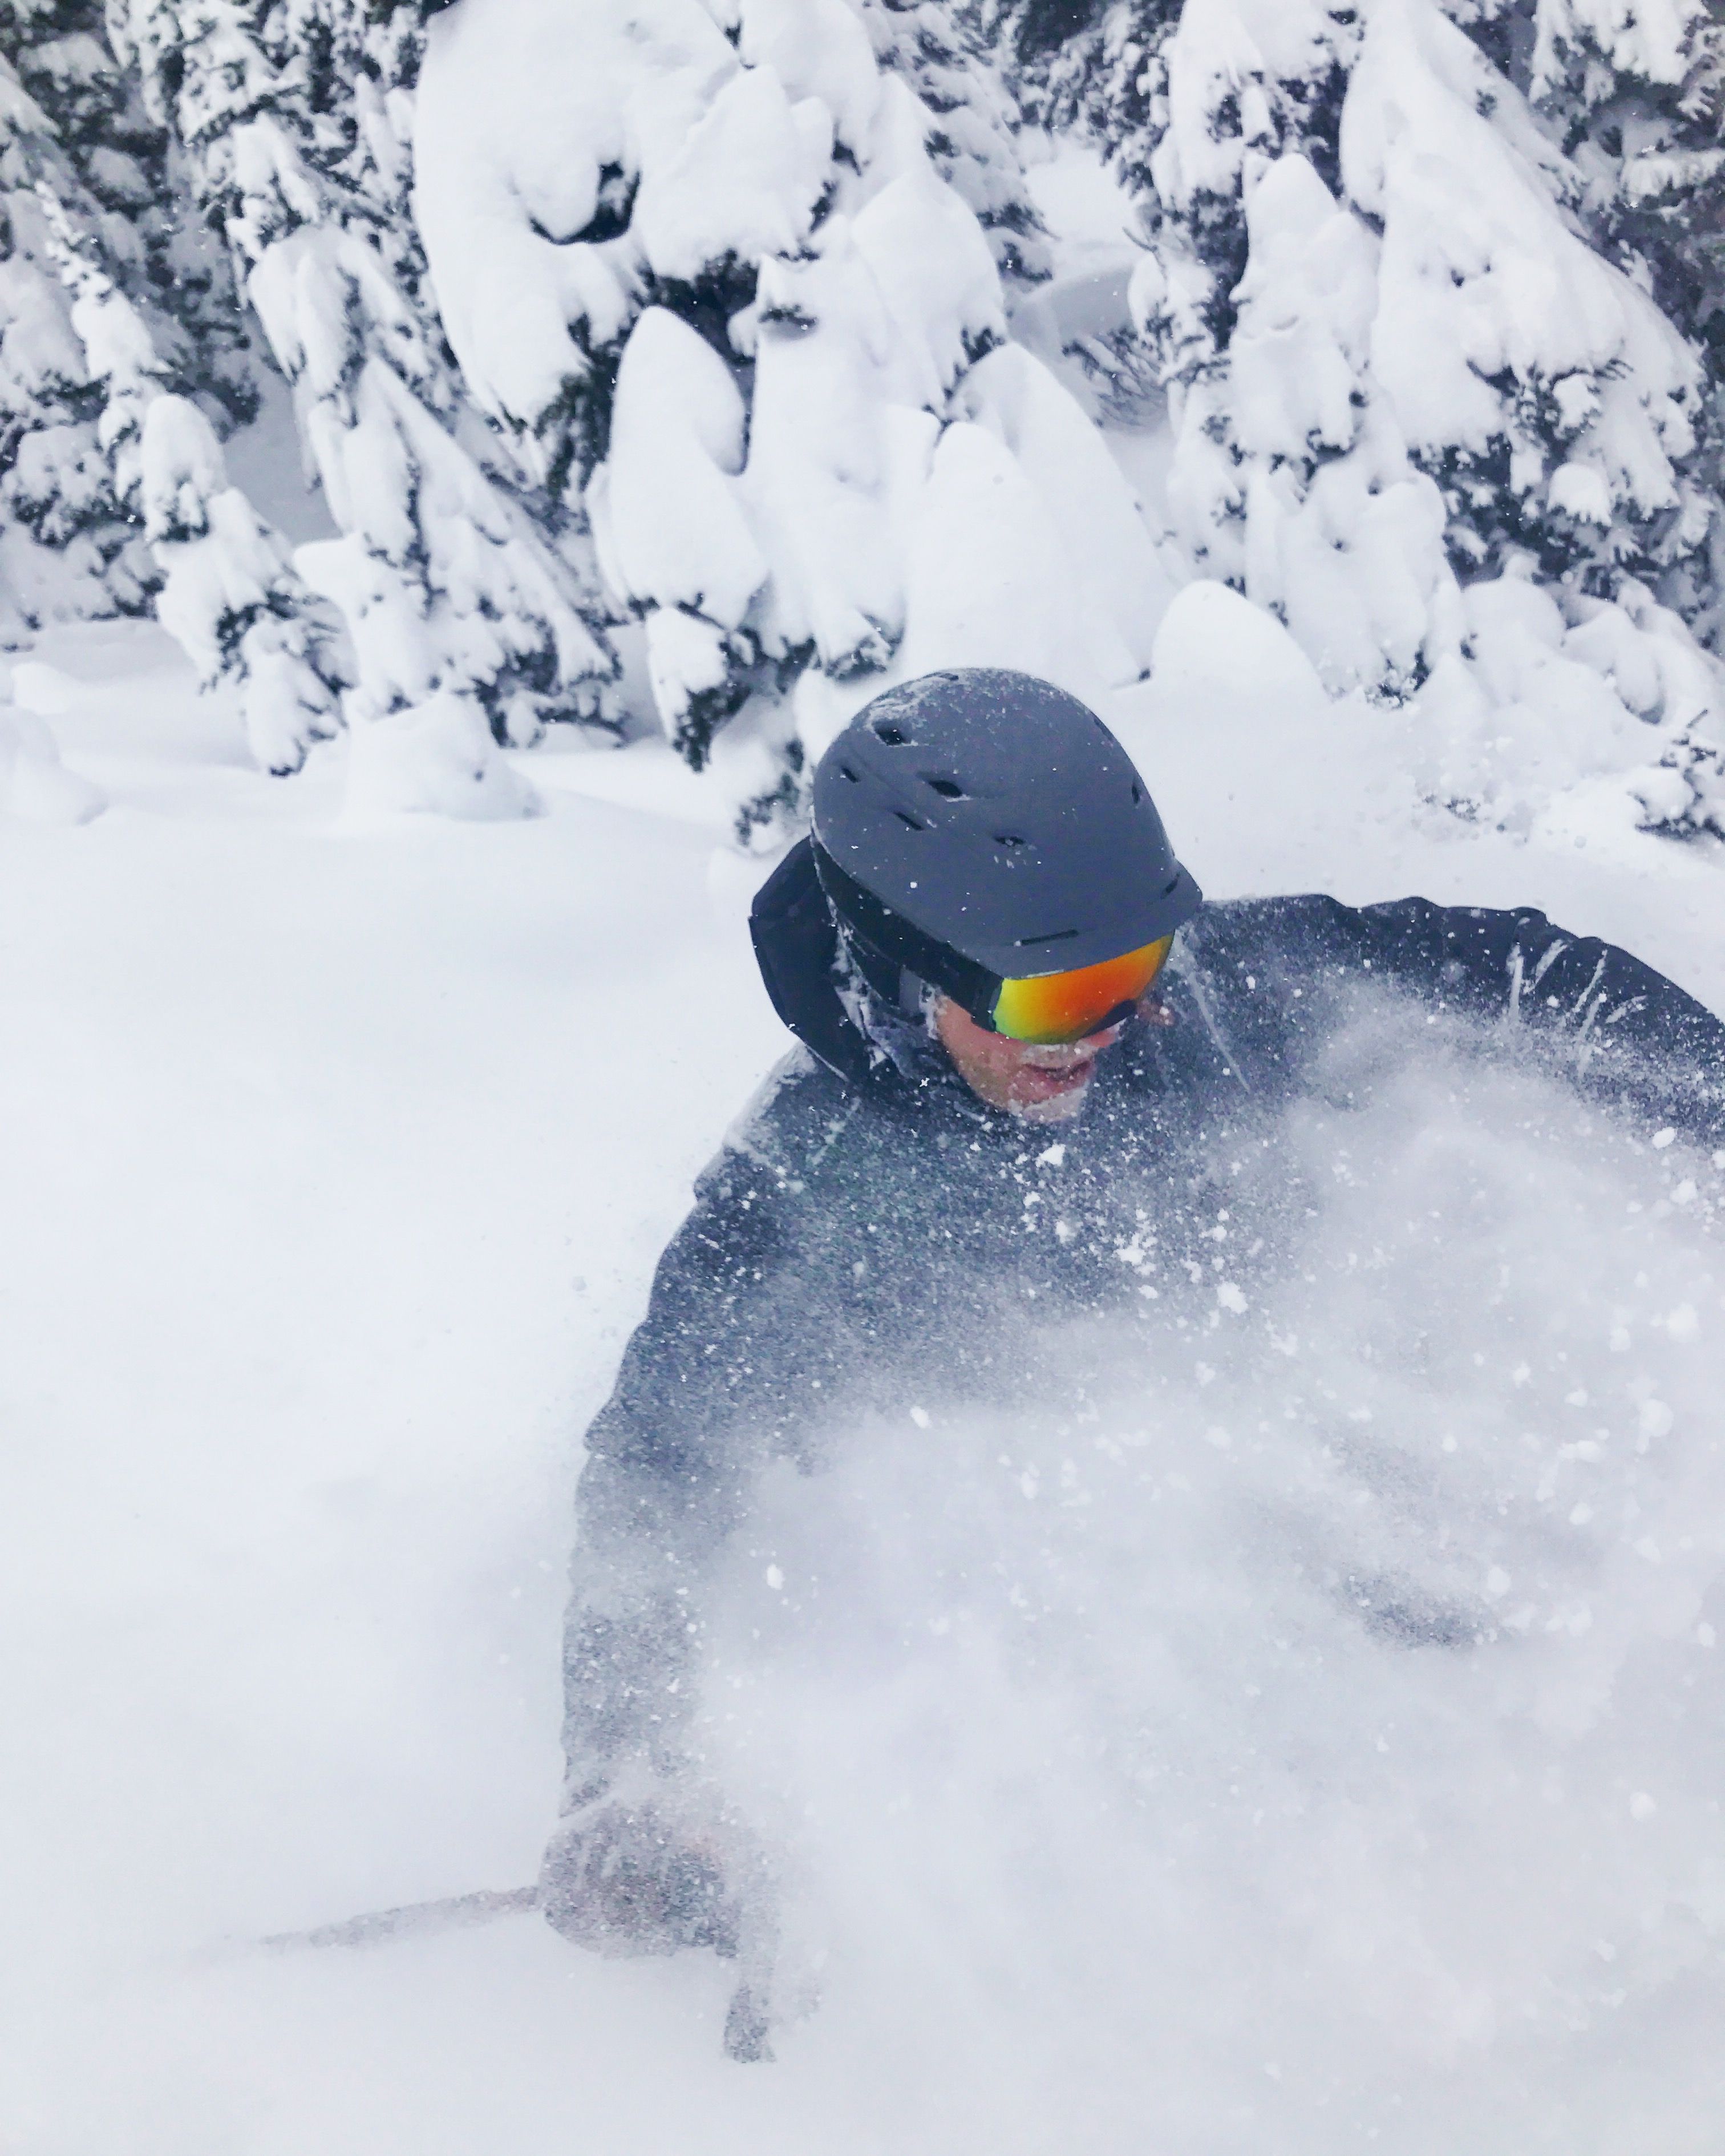 powder skiing blower, climate change, climate, snow decline